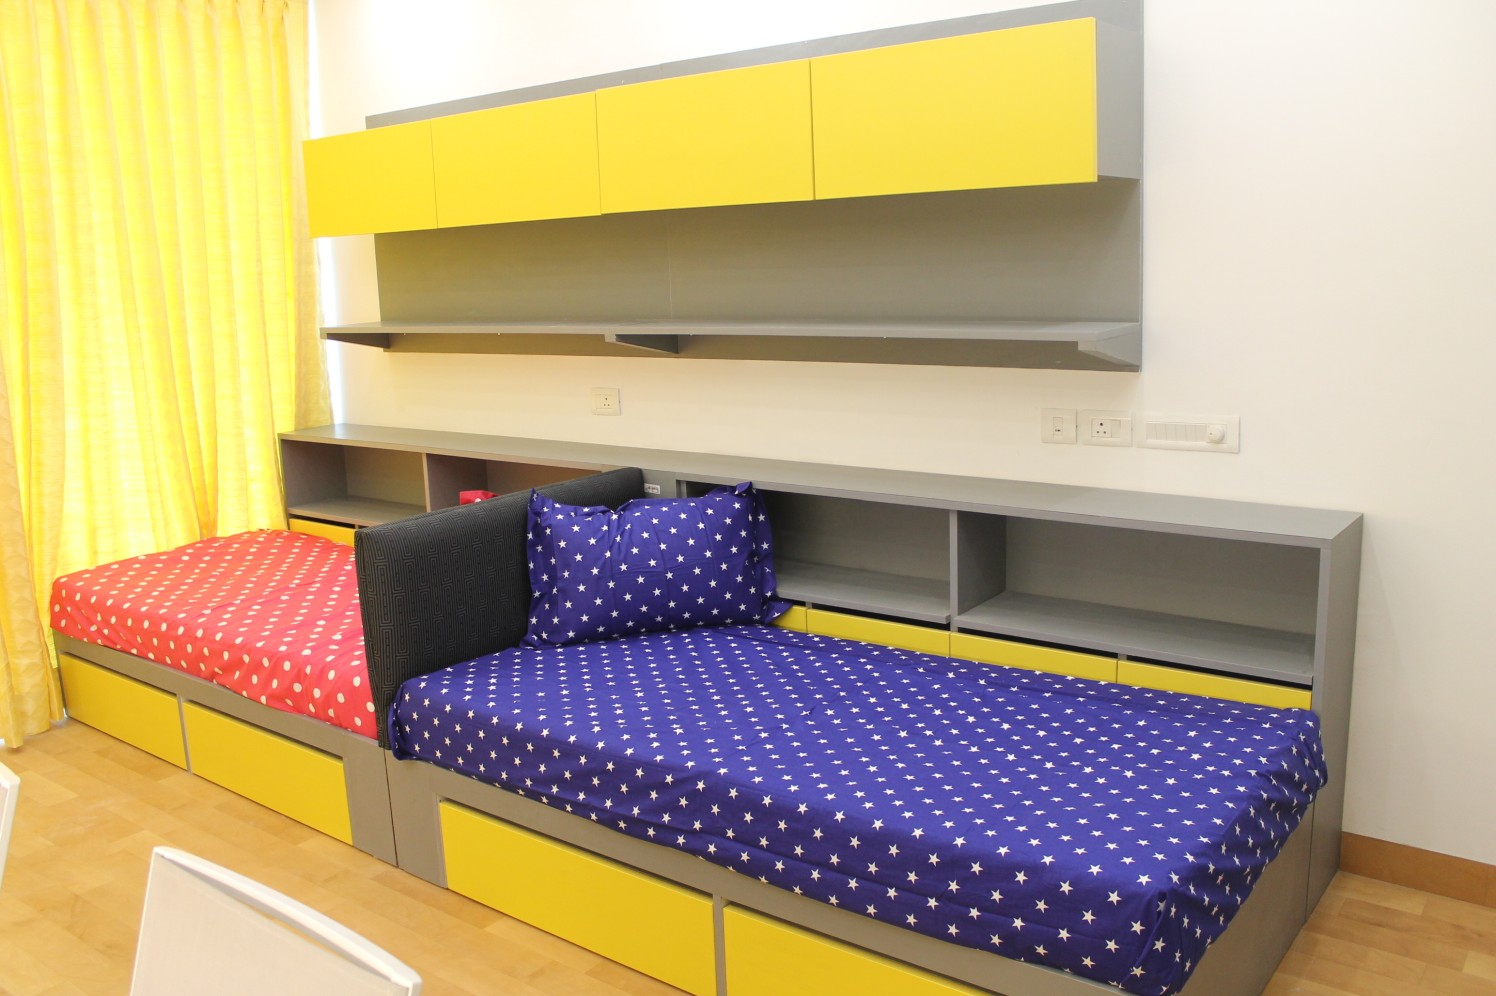 Colourful guest bedroom by coalitiondesigns Bedroom Modern | Interior Design Photos & Ideas